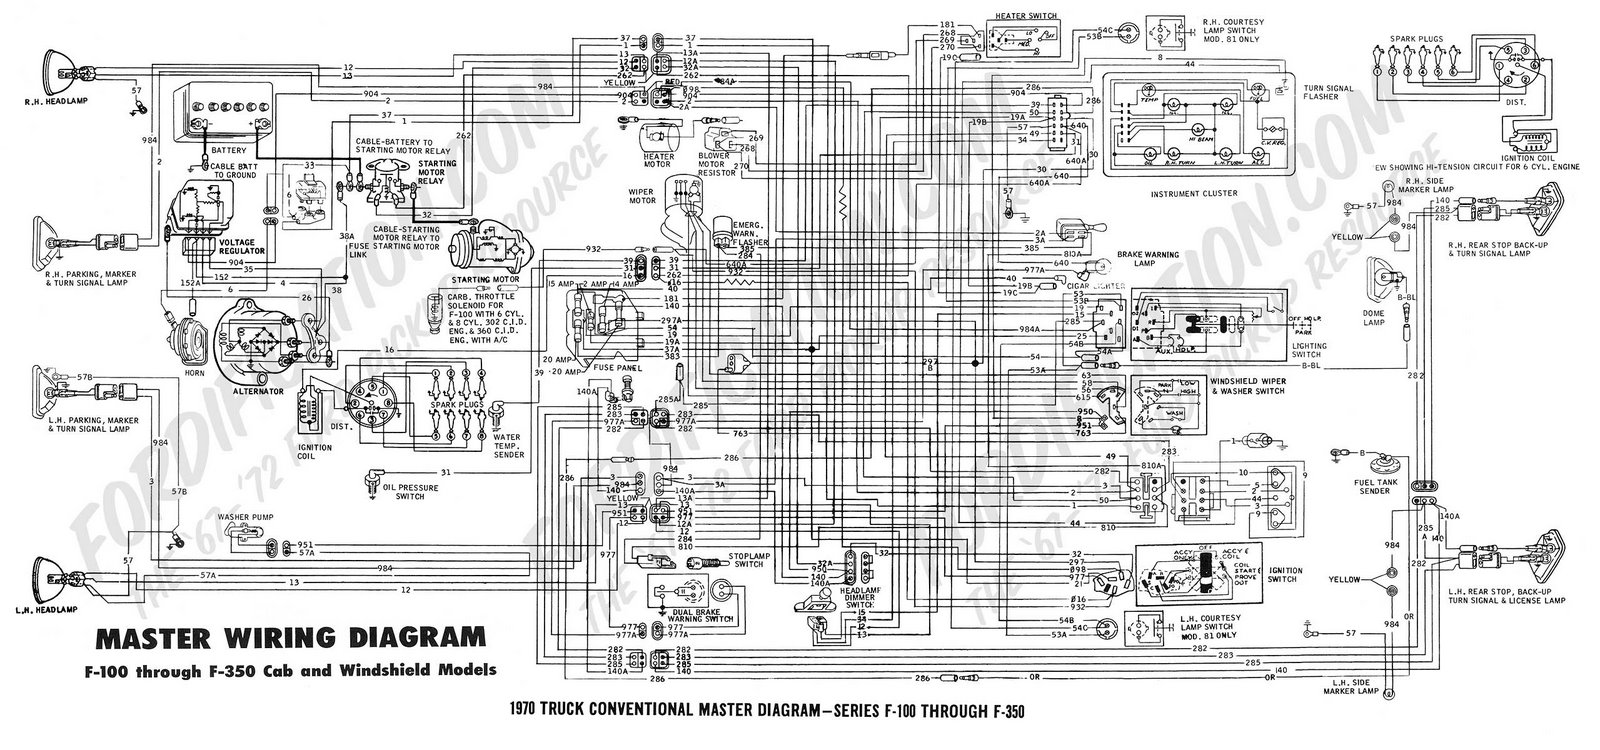 Truck Convencional Master Diagram Series F Through F on Kia Car Radio Wiring Connector